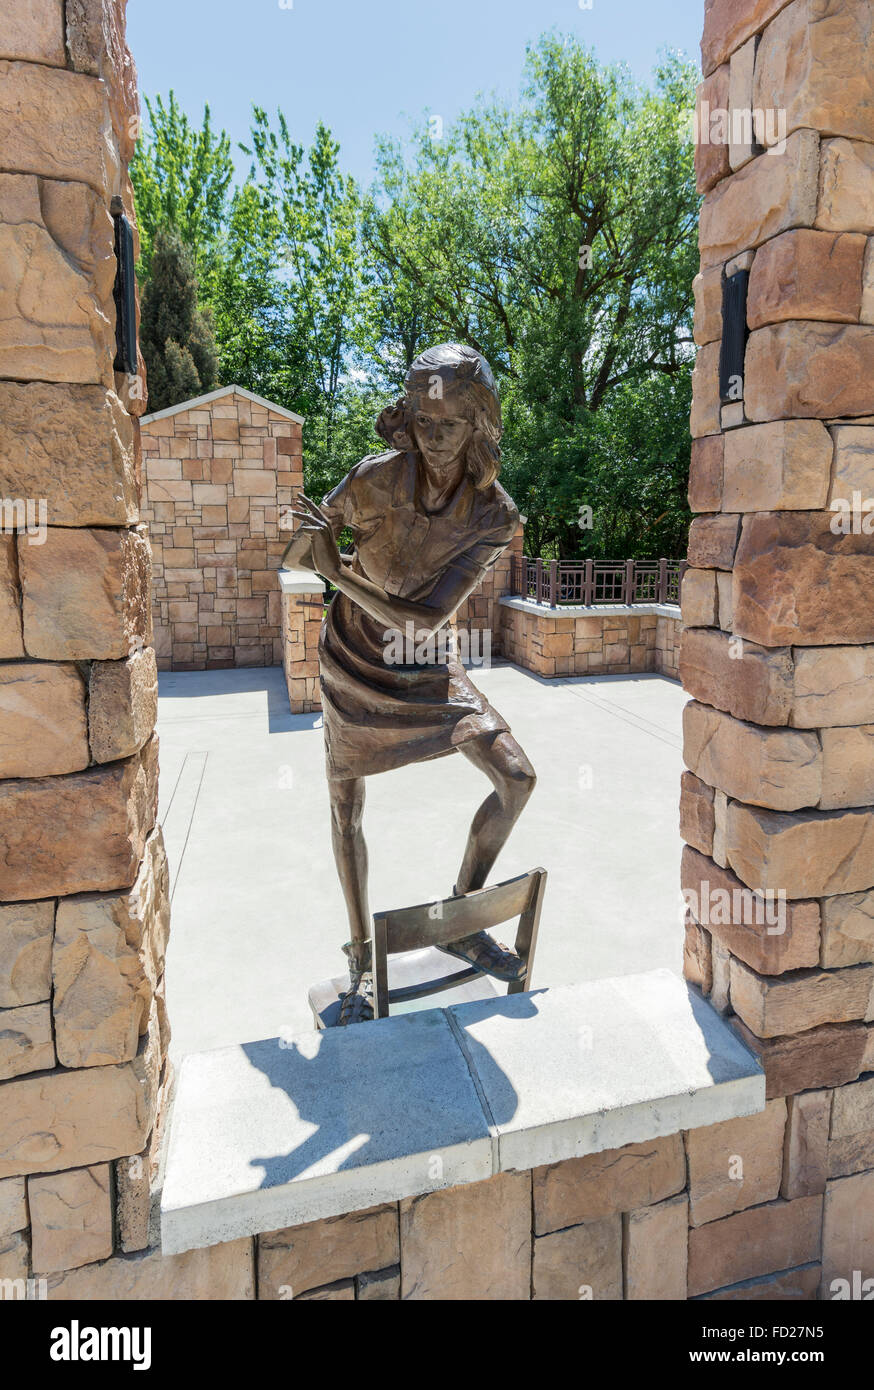 Idaho, Boise, Idaho Anne Frank Human Rights Memorial, life size bronze sculpture of Frank holding diary - Stock Image